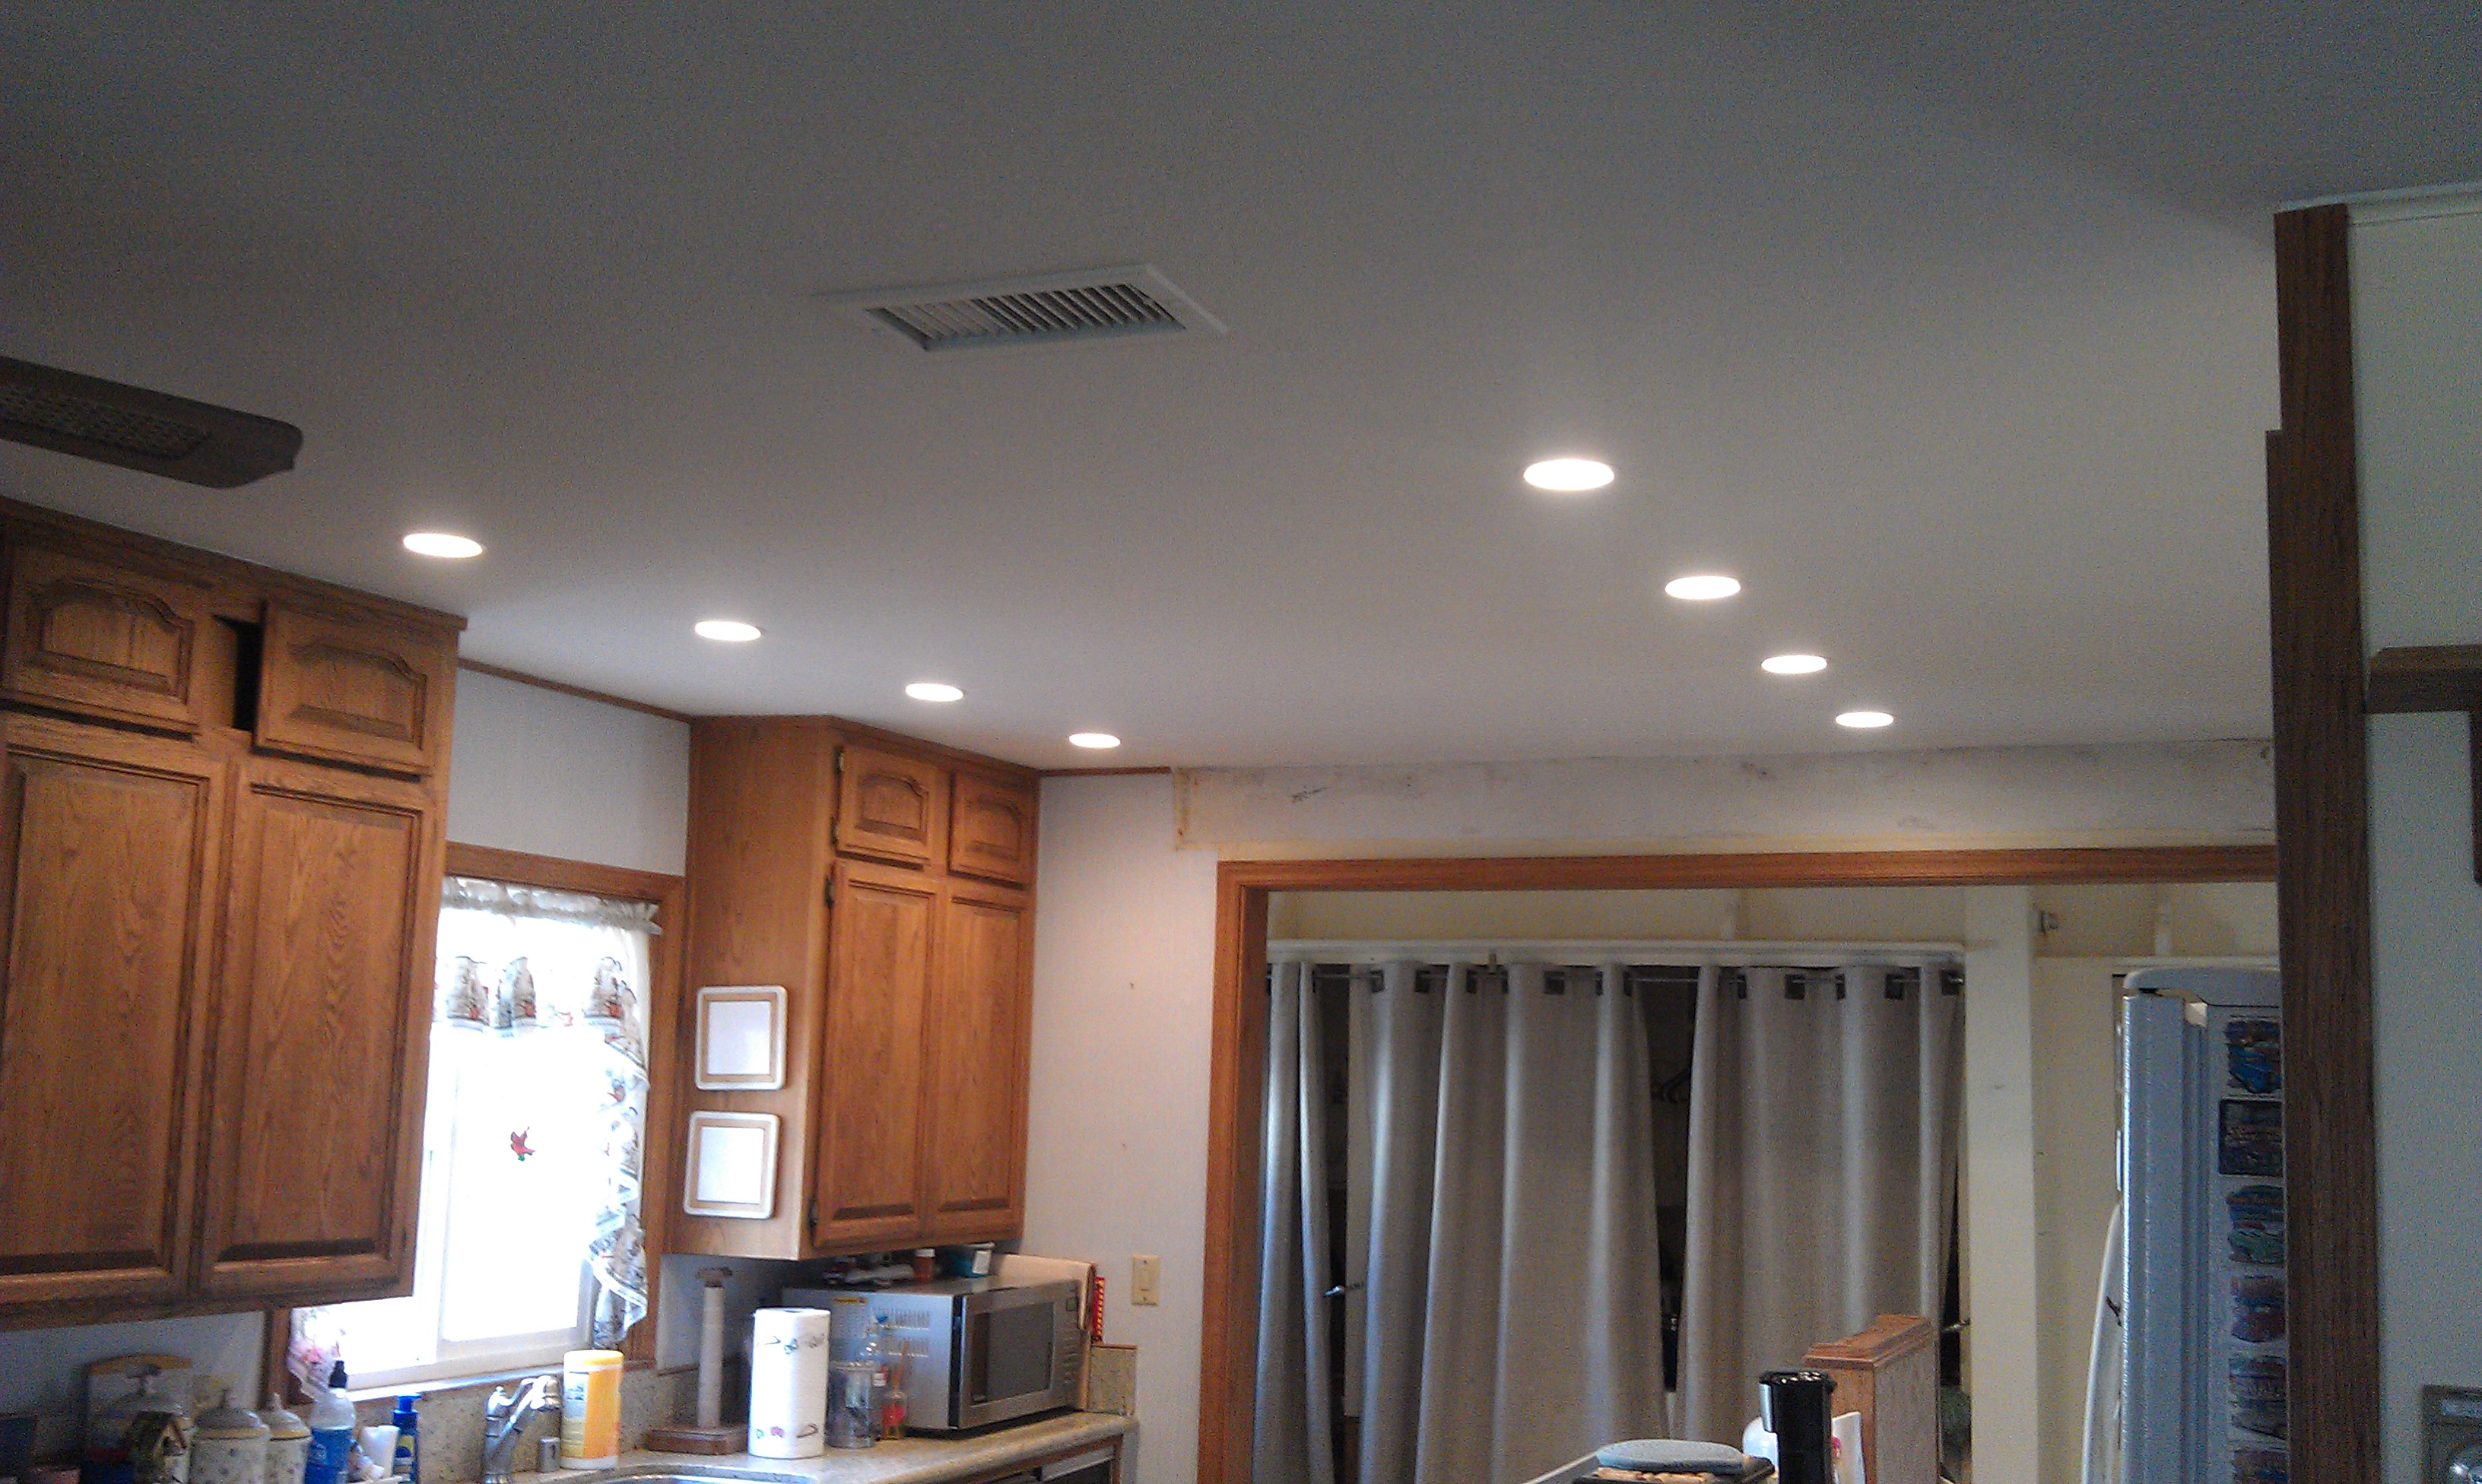 interior led lighting manufacturers modern recessed ideas kitchen ceiling lights recessed lighting ideas lighting recessed